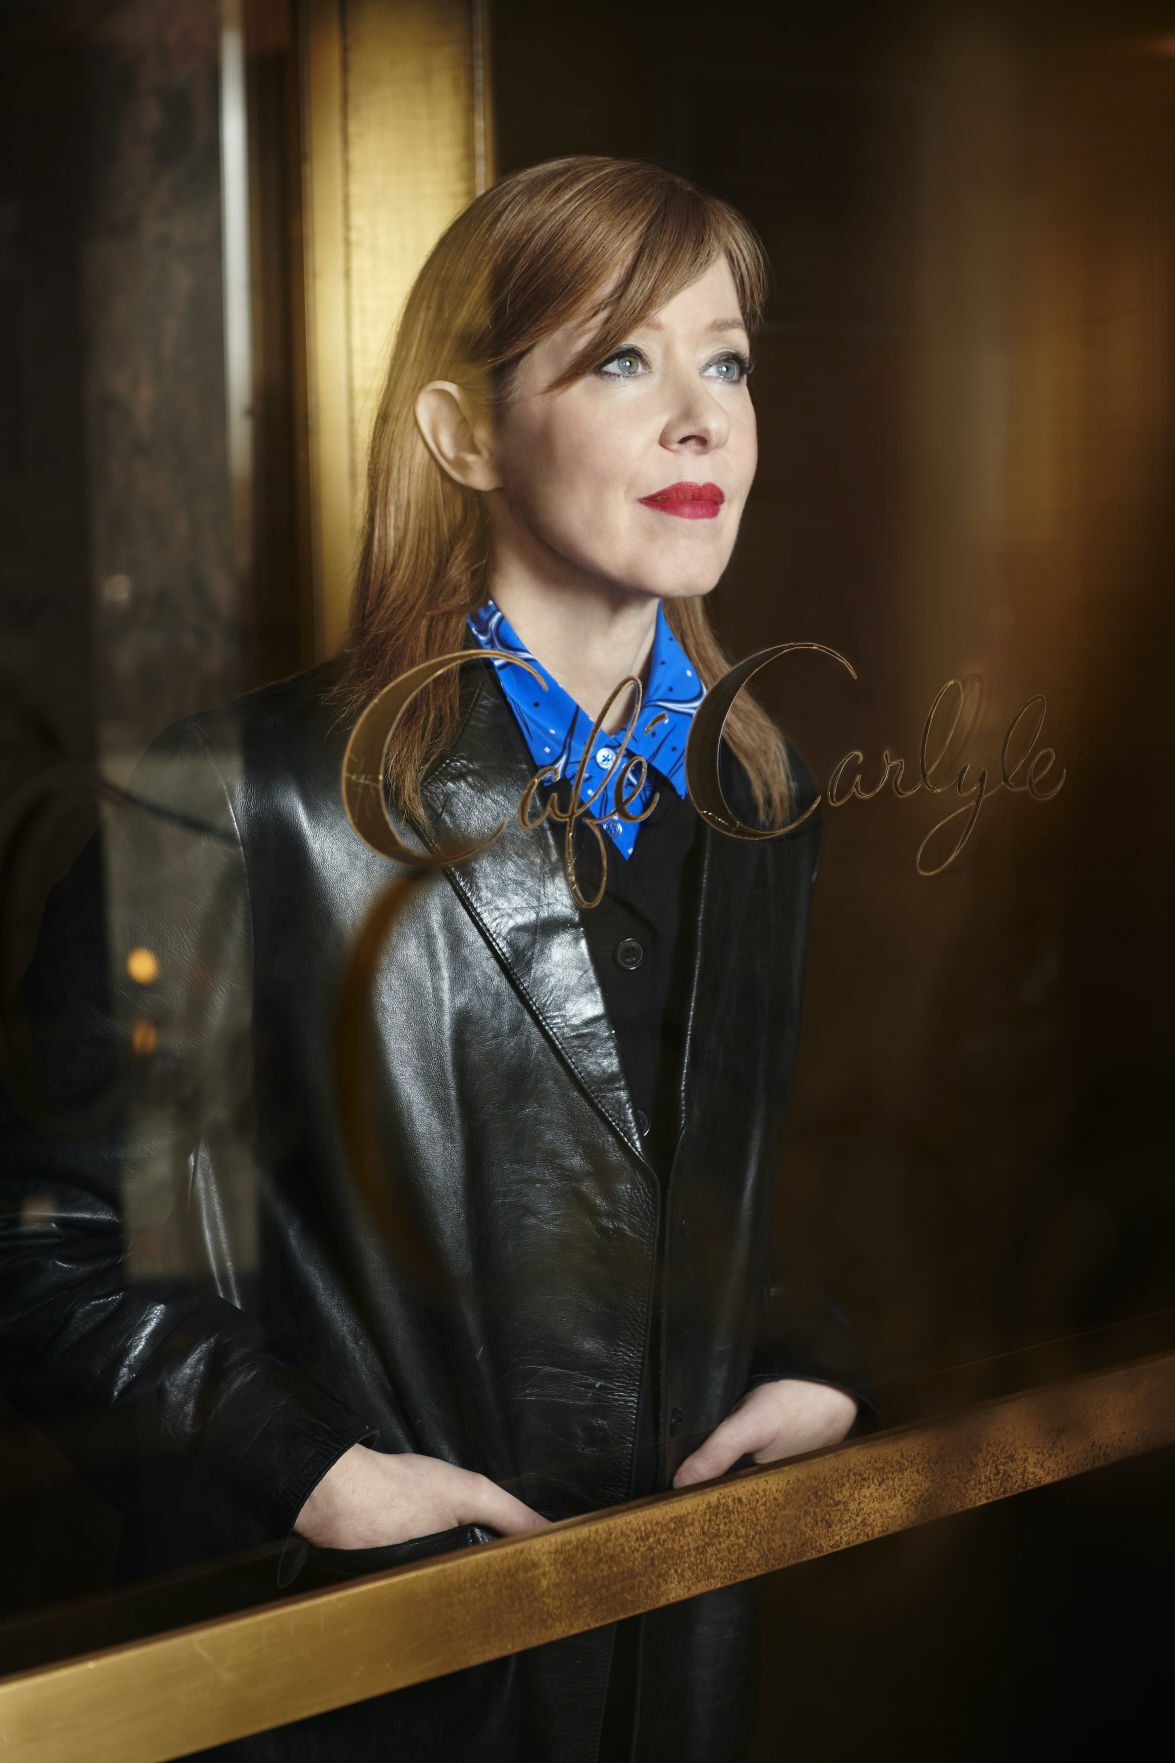 Suzanne Vega at the Cafe Carlyle